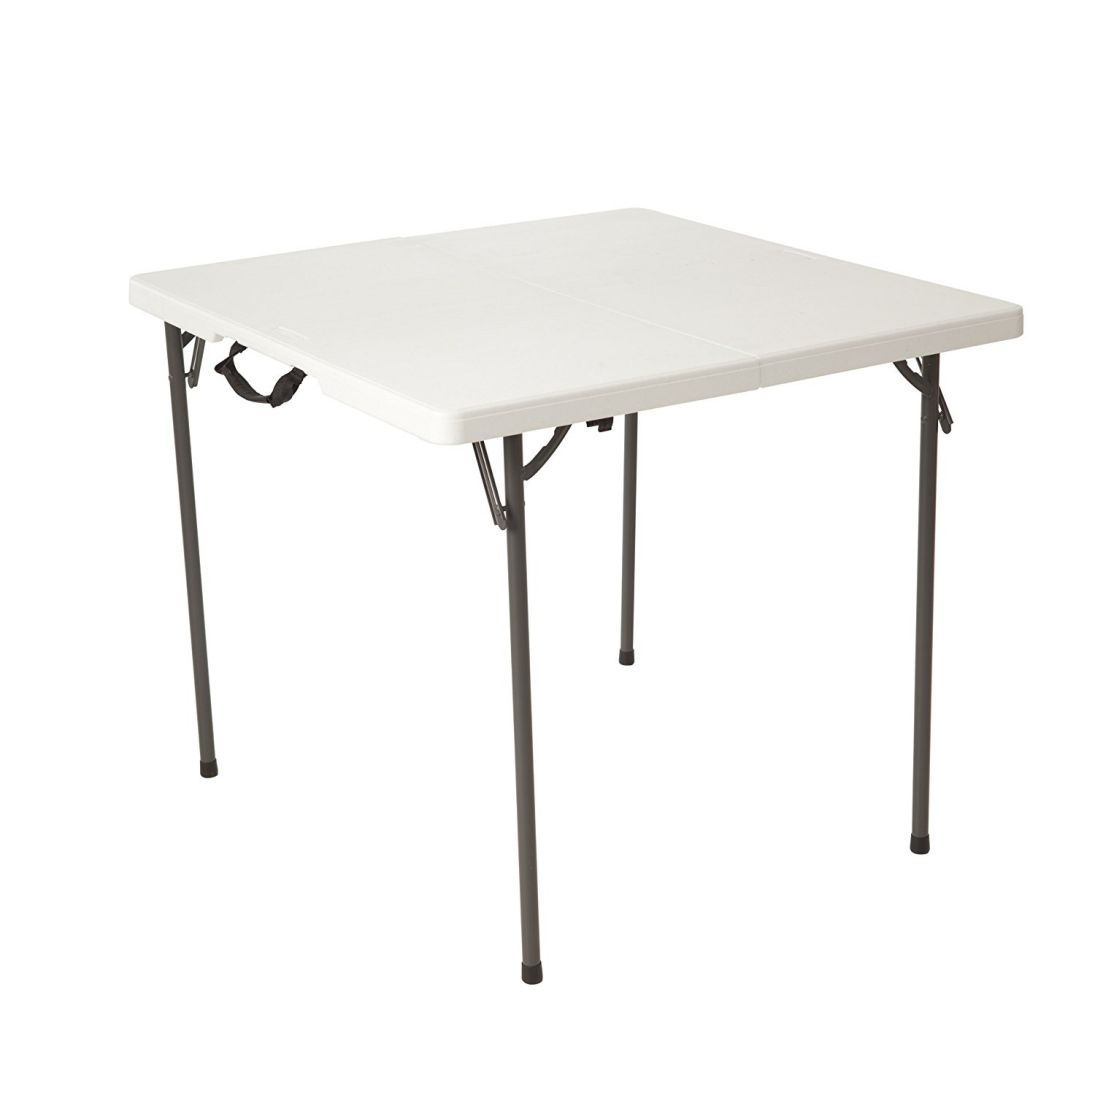 Lifetime-80273-Fold-in-Half-Square-Table-34-Inch-White